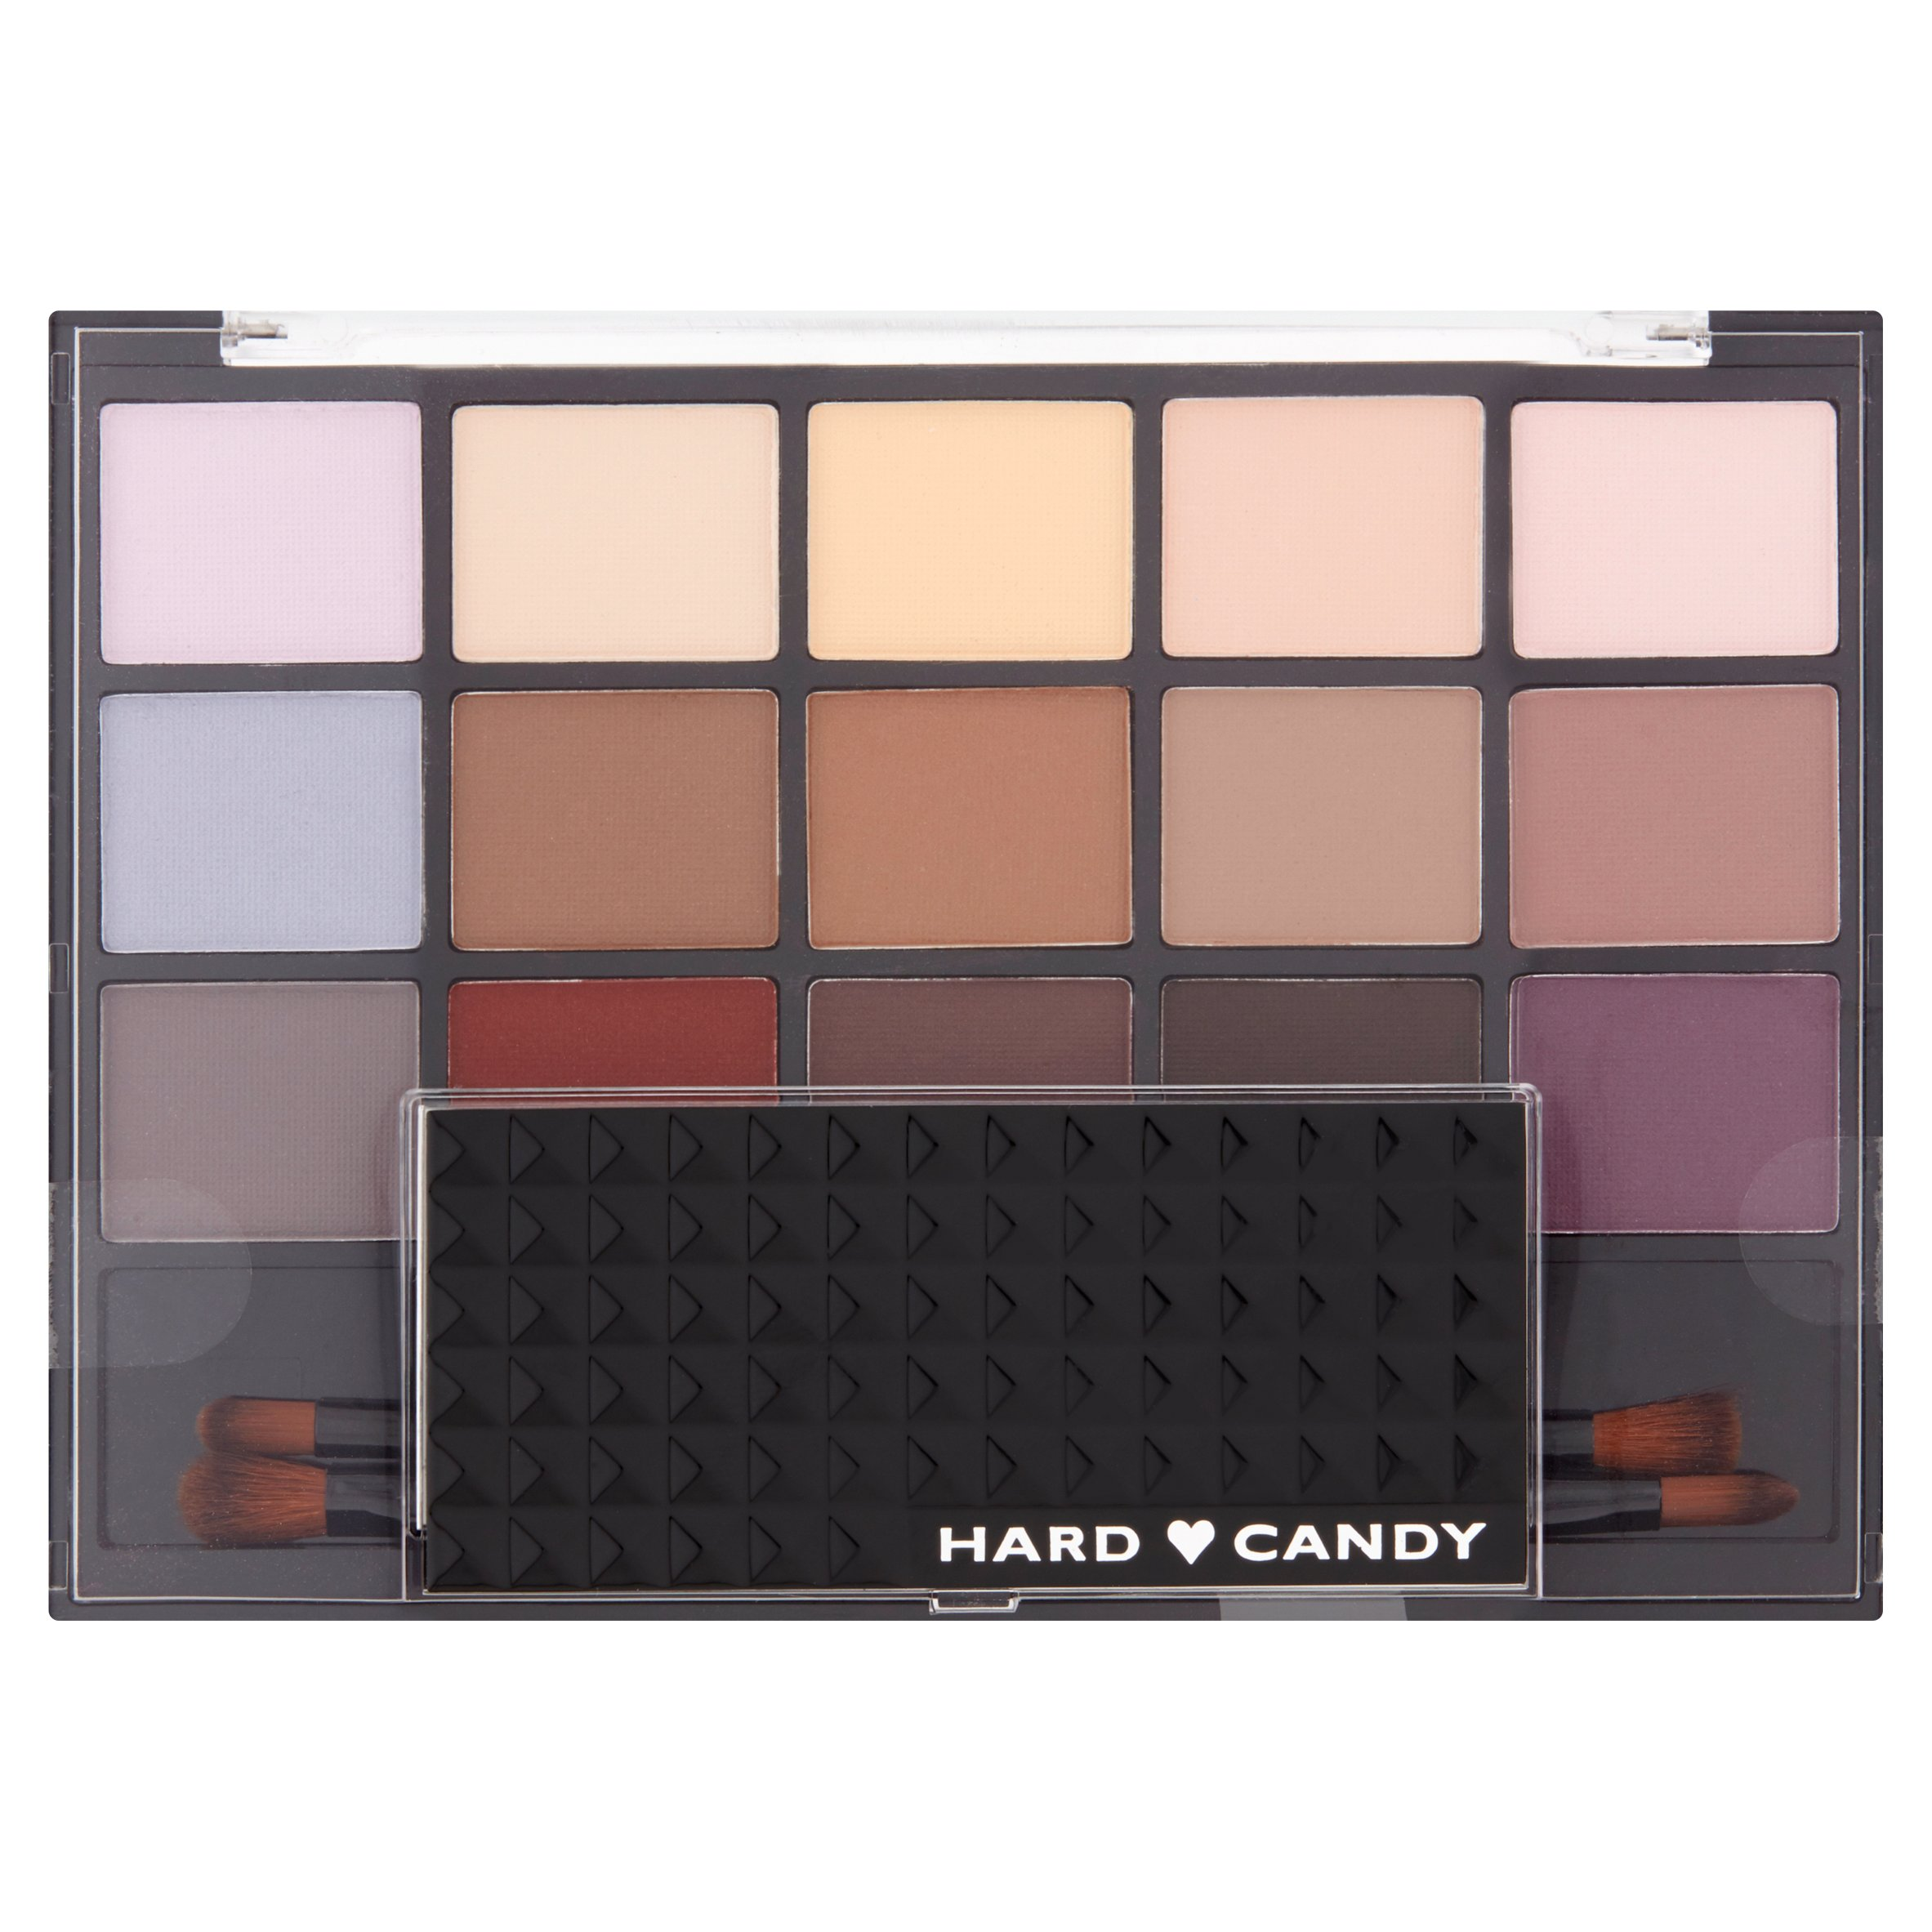 Xtreme Color Inc. Nu World Corporation Hard Candy Pro Eyeshadow Palette Artiste Kit,